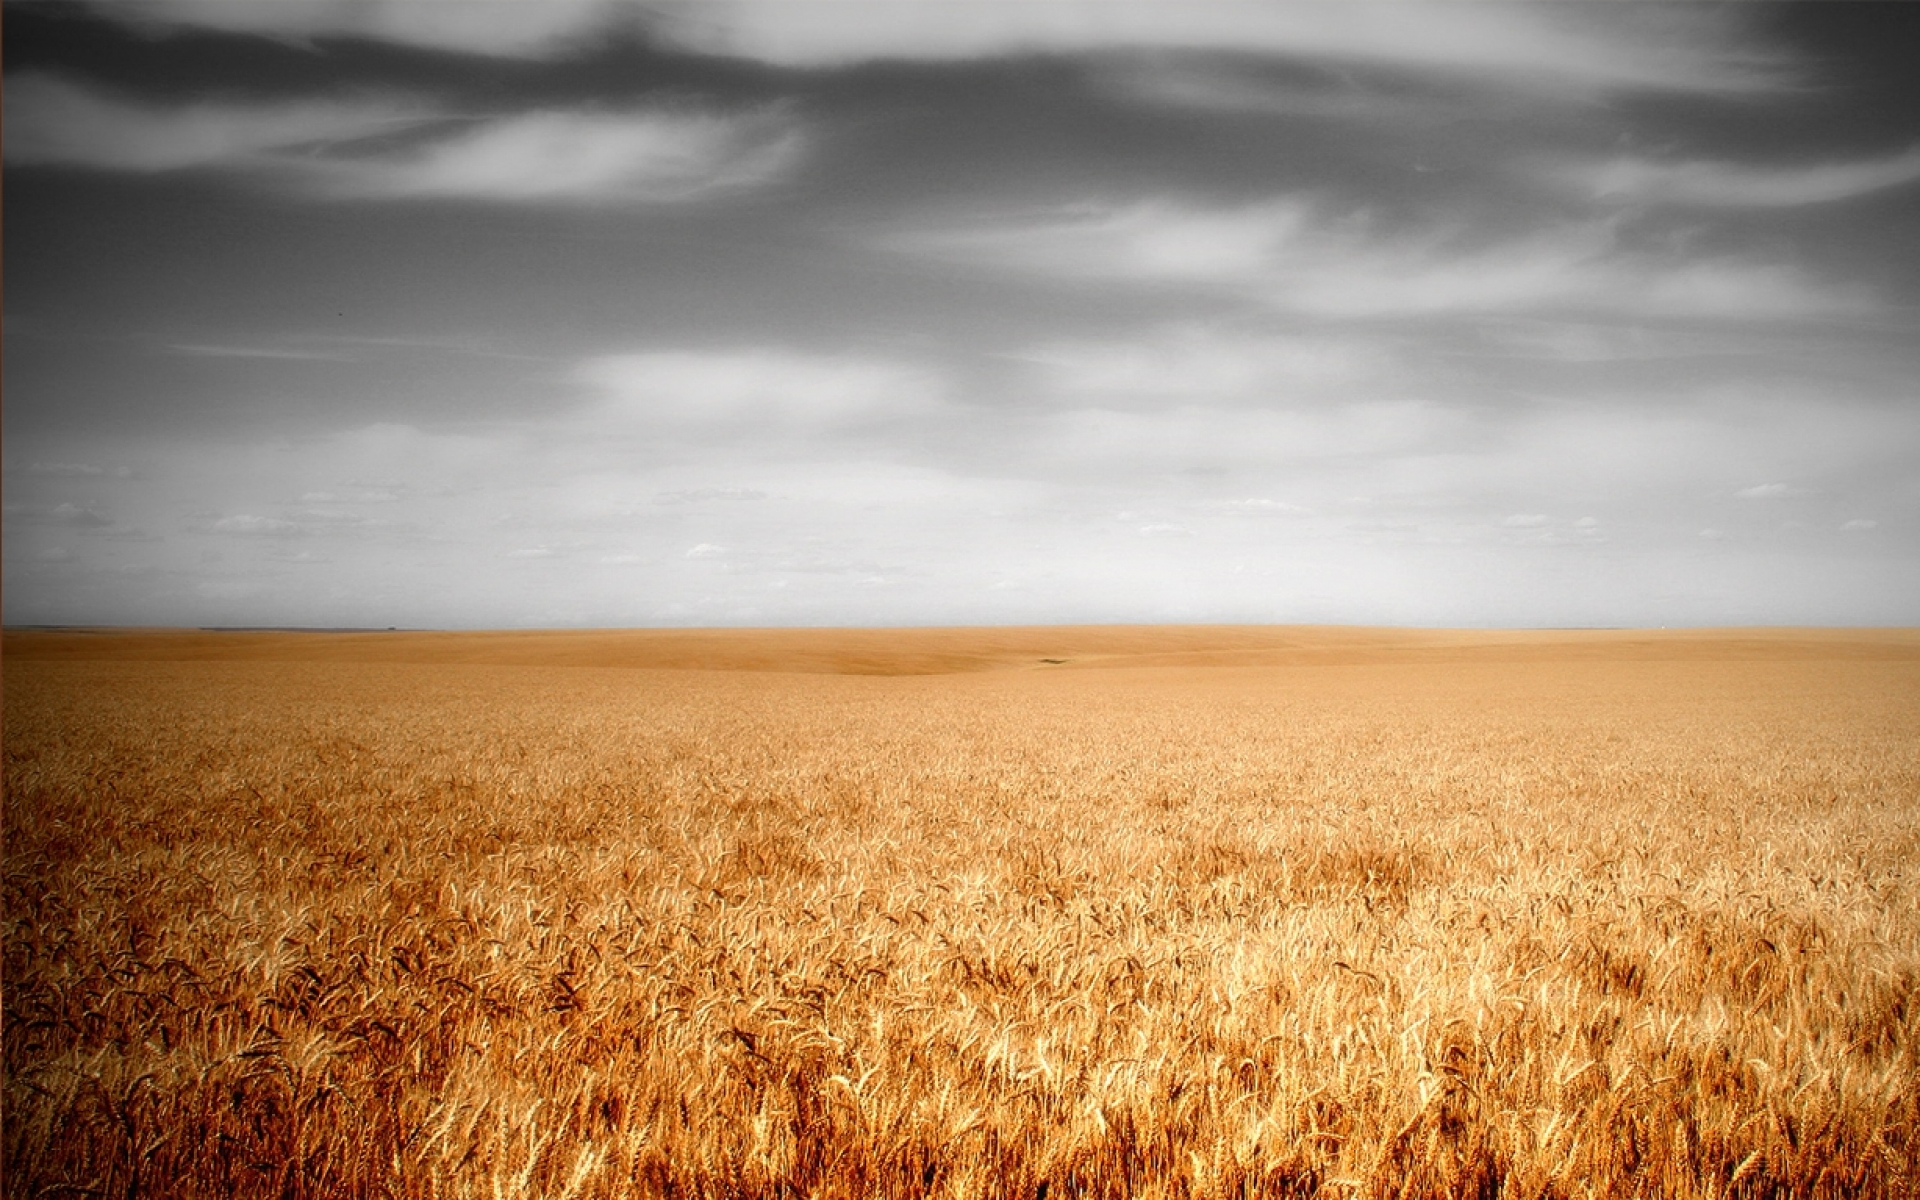 Fall Trees Background Wallpaper Wheat Field Amp Gray Sky Wallpapers Wheat Field Amp Gray Sky